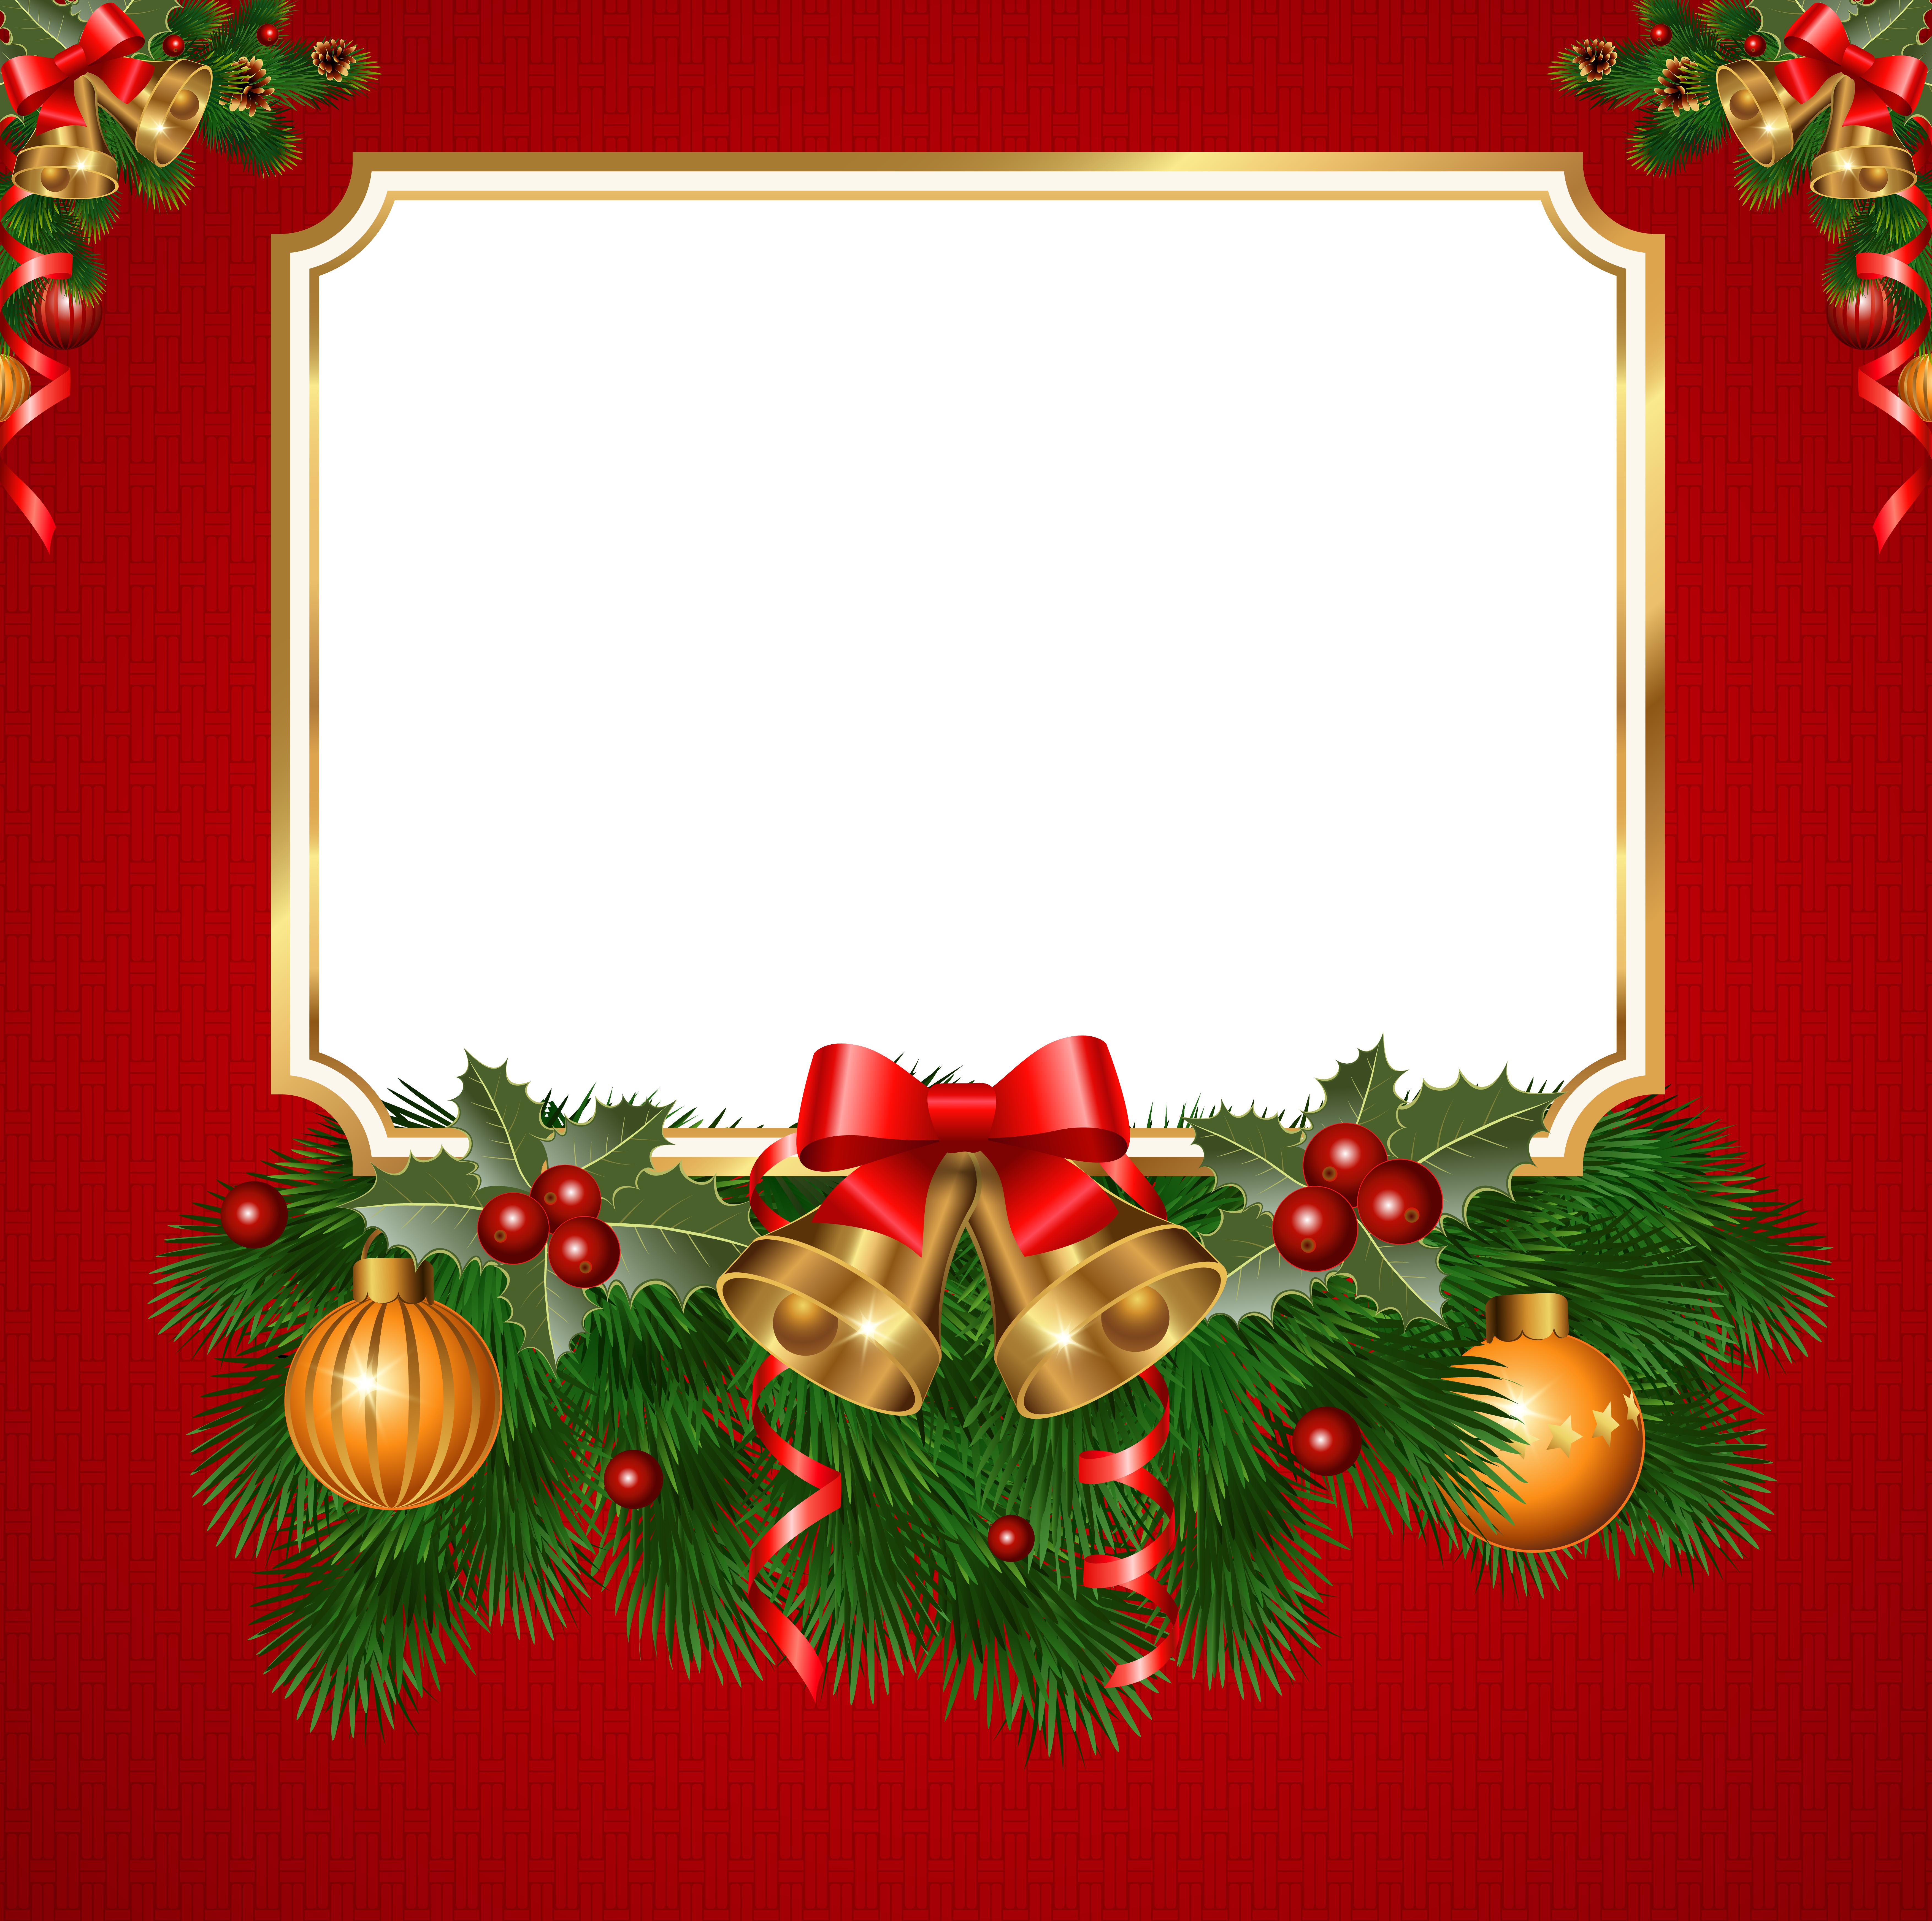 Transparent red frame pinterest. Christmas png borders graphic freeuse